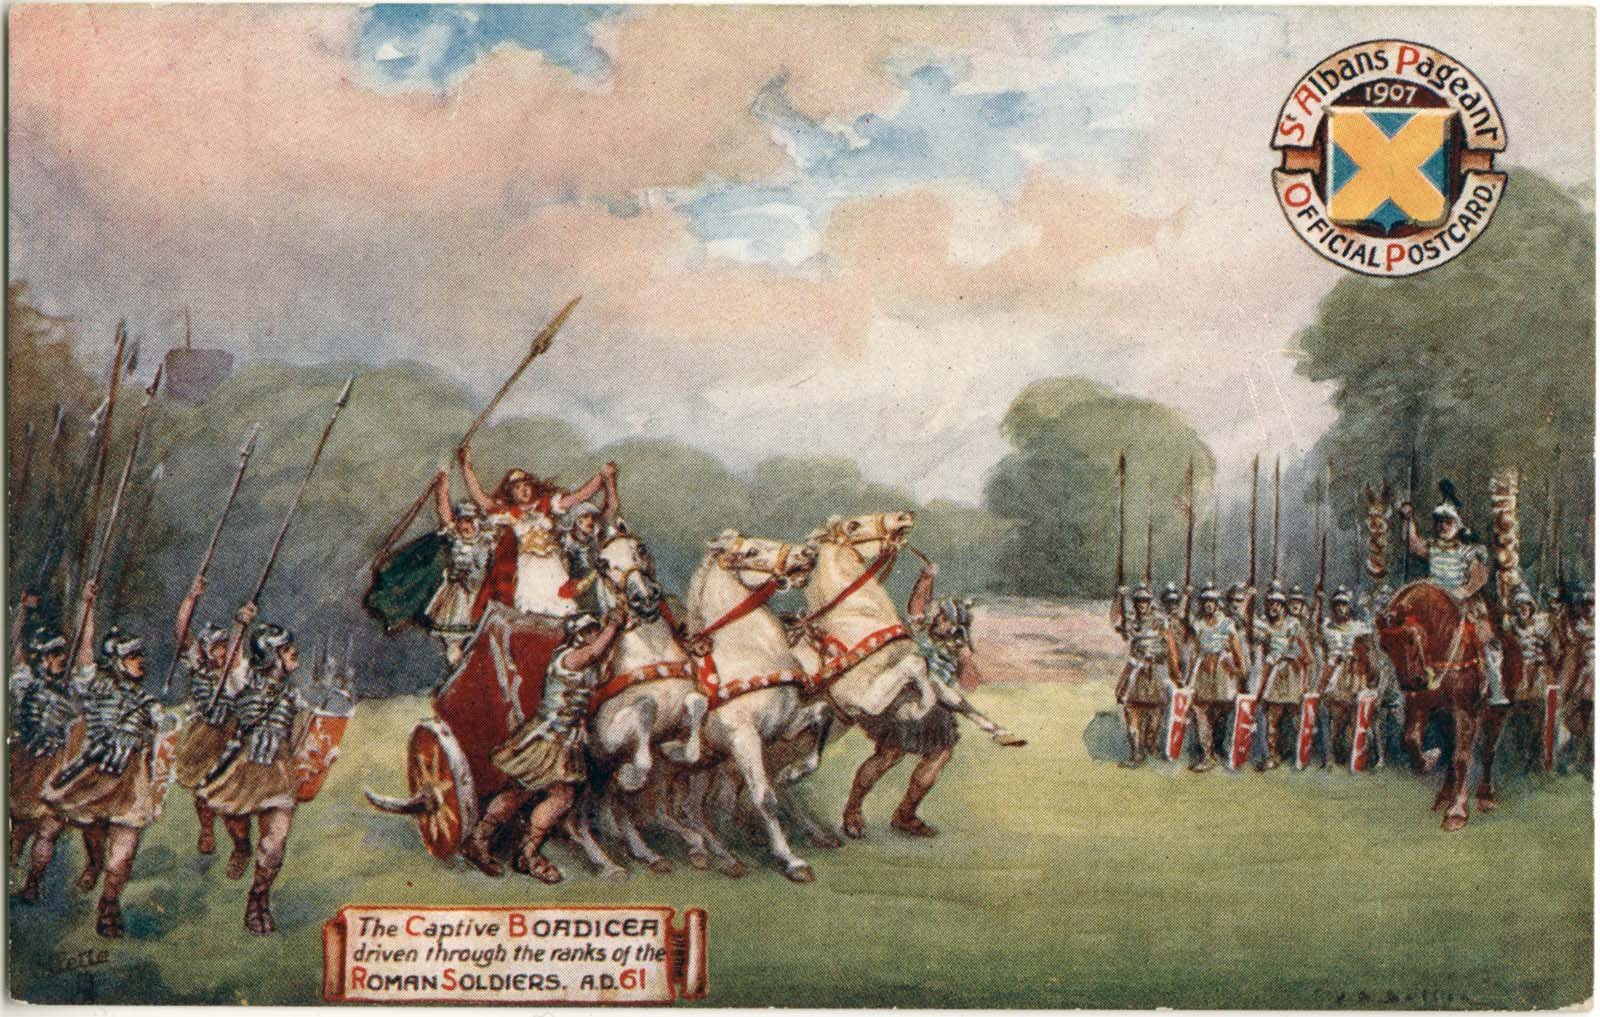 a colour postcard depicting Boadicea on her chariot surrounded by Roman legionnaires